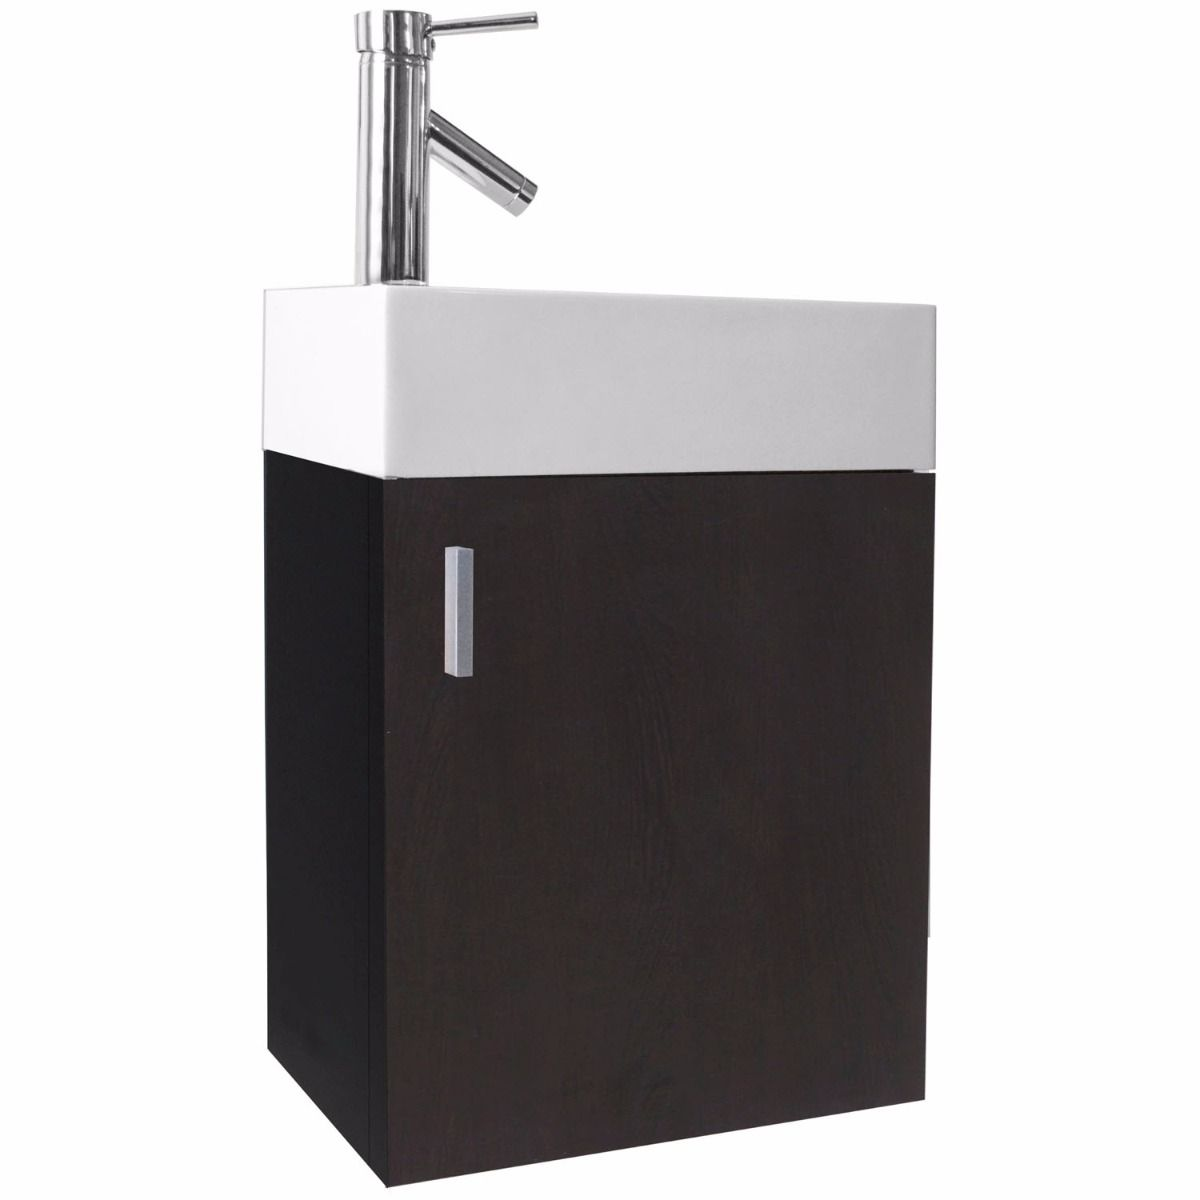 Carino Shallow Single Bath Vanity U2013 10 1/3u2033 Depth